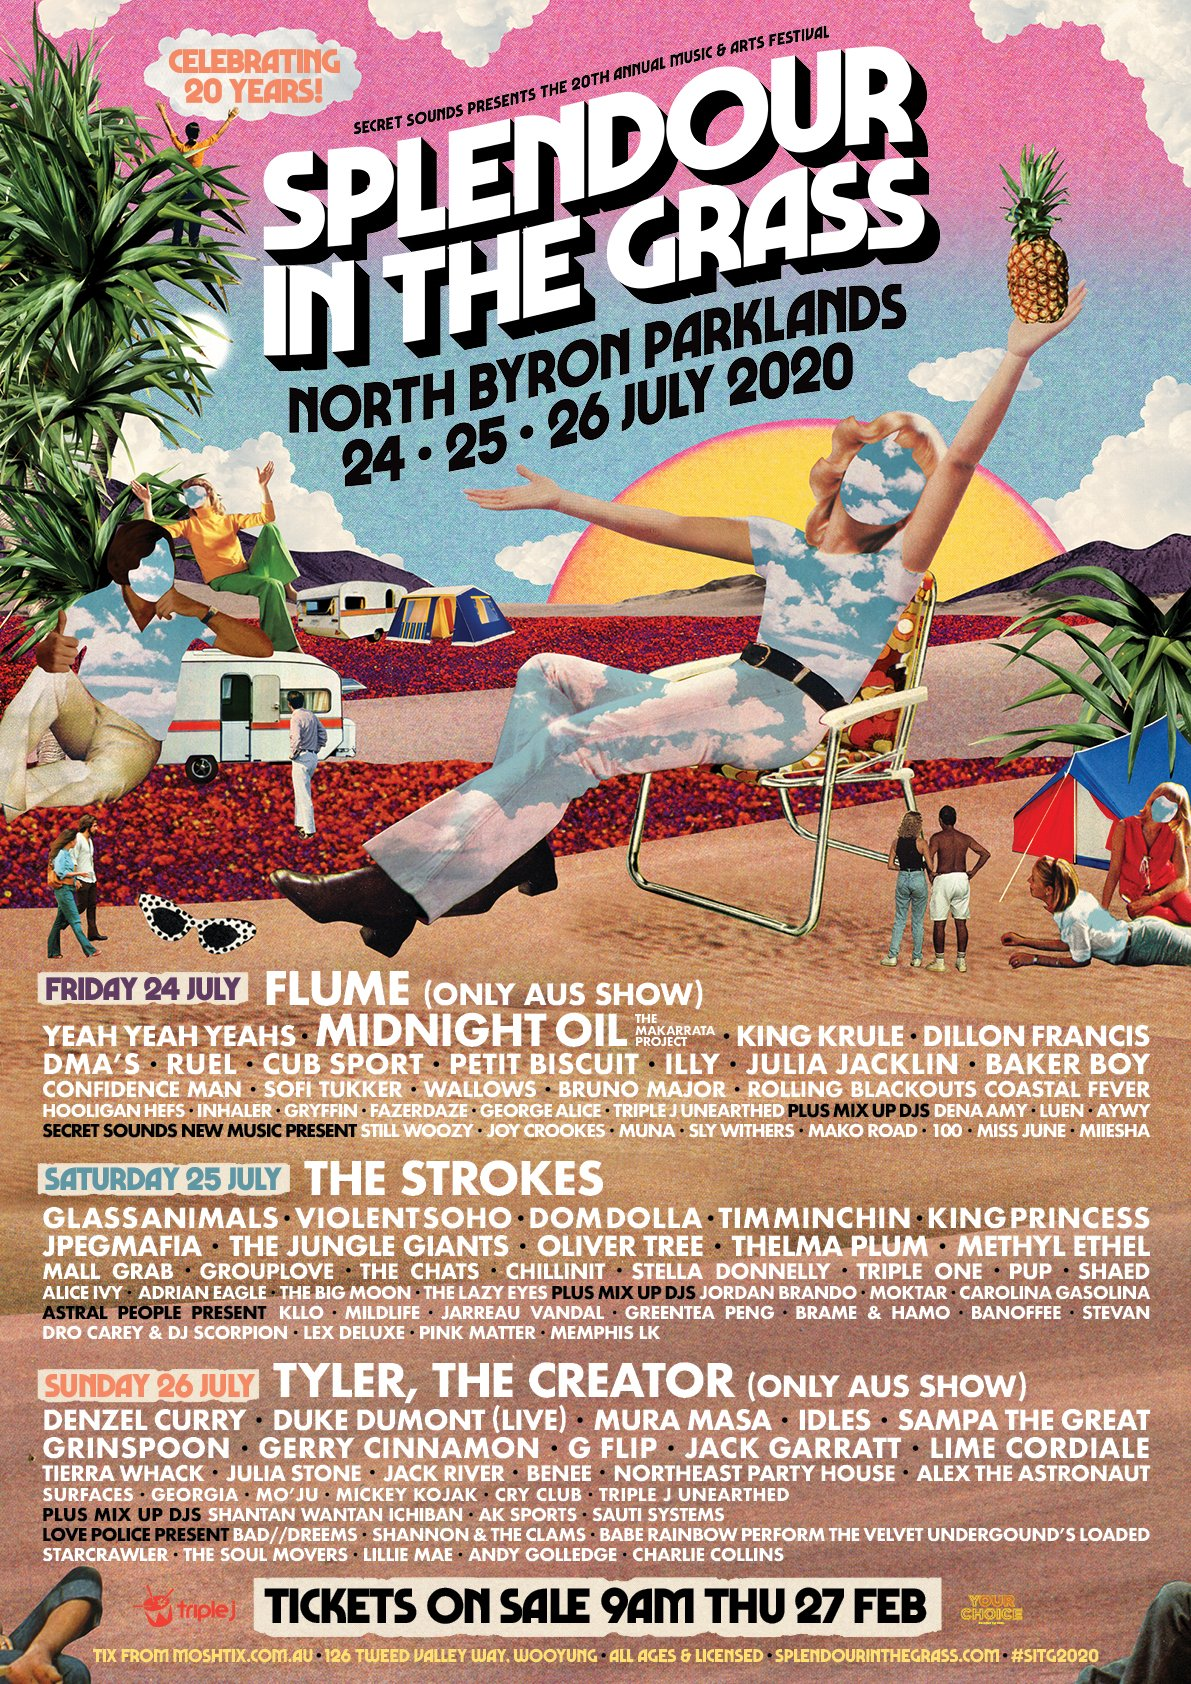 splendour-in-the-grass-2020-poster-oz-edm